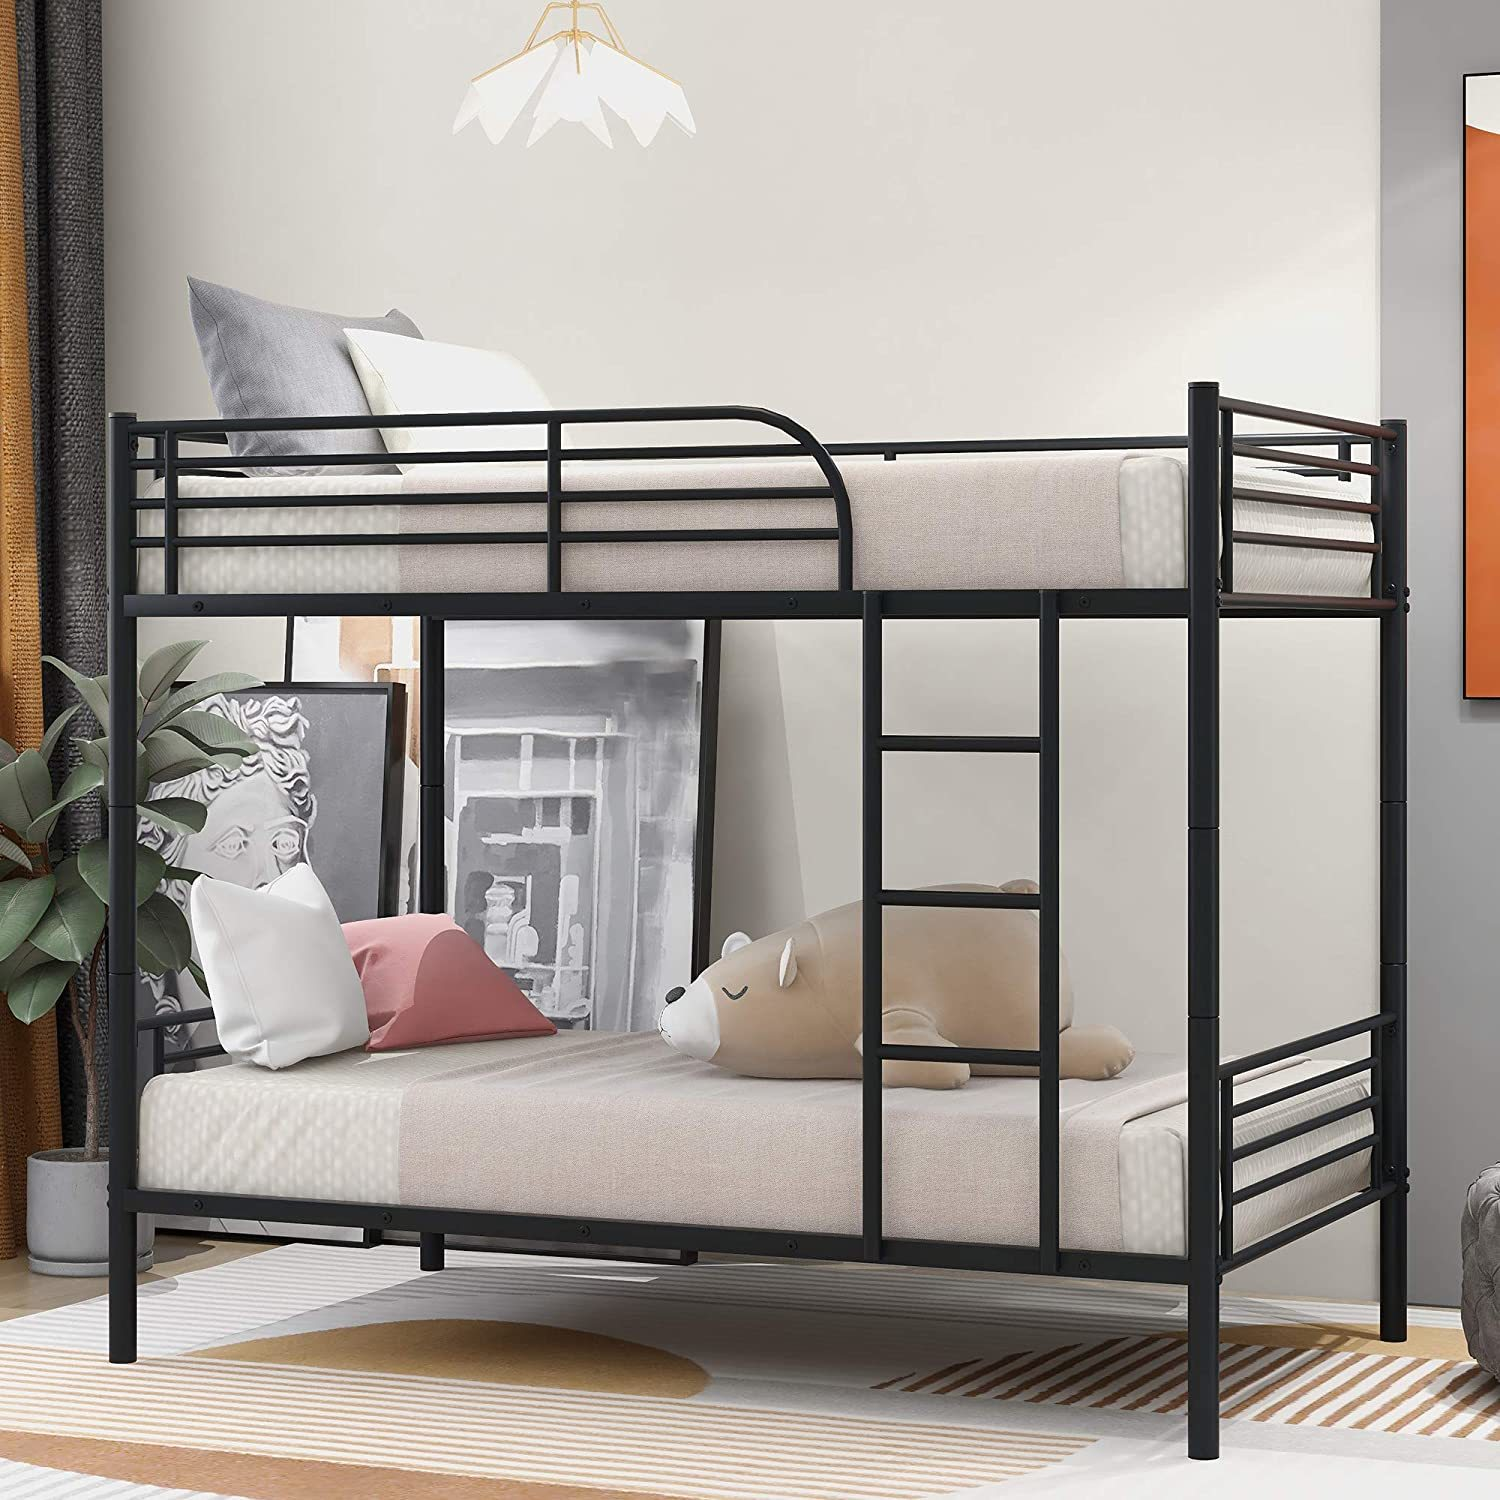 Bunk Beds Under $100 $150 $200 & $300 - JULYFOX Modern Metal Bunk Bed – Twin-over-twin